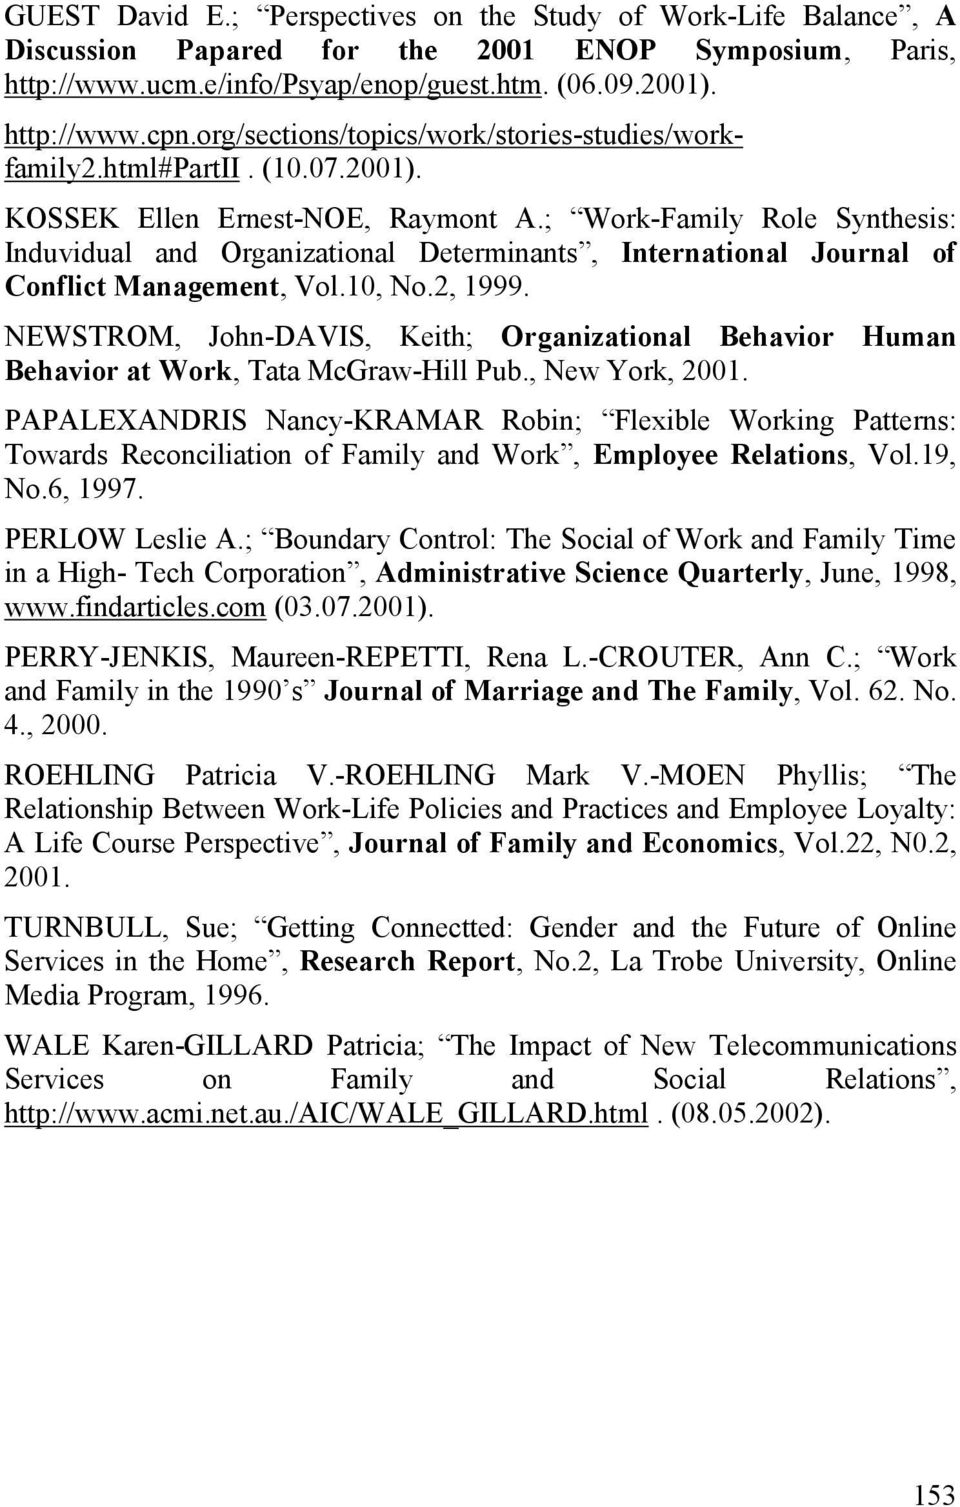 ; Work-Family Role Synthesis: Induvidual and Organizational Determinants, International Journal of Conflict Management, Vol.10, No.2, 1999.